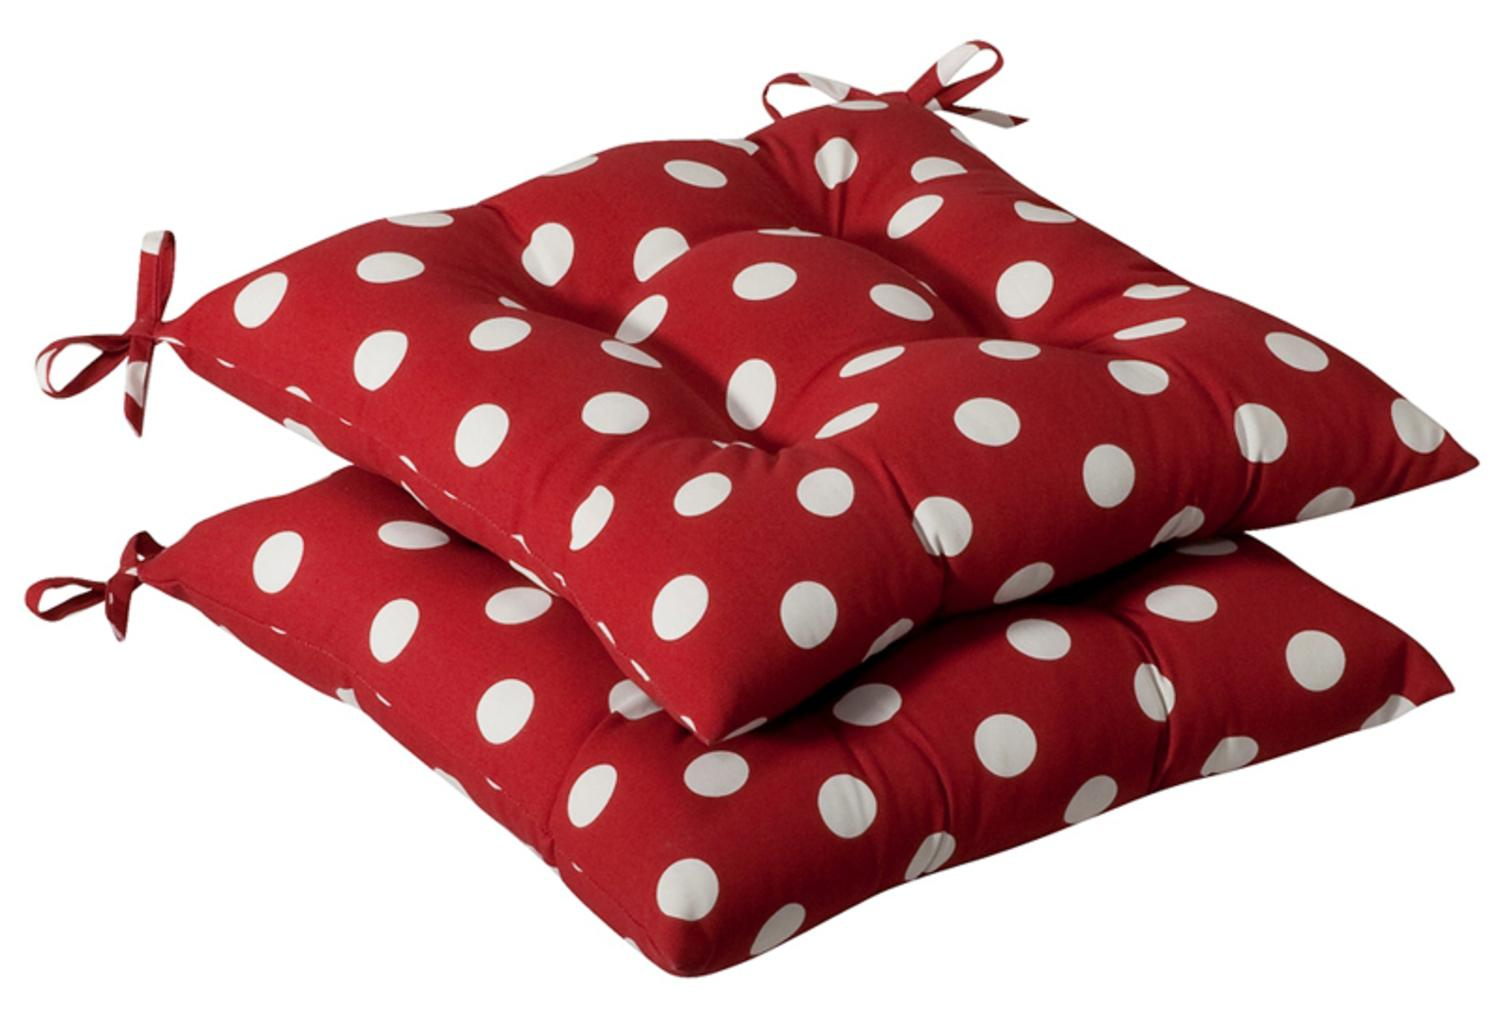 Pack of 2 Outdoor Patio Tufted Chair Seat Cushions Red & White Polka Dot by CC Home Furnishings